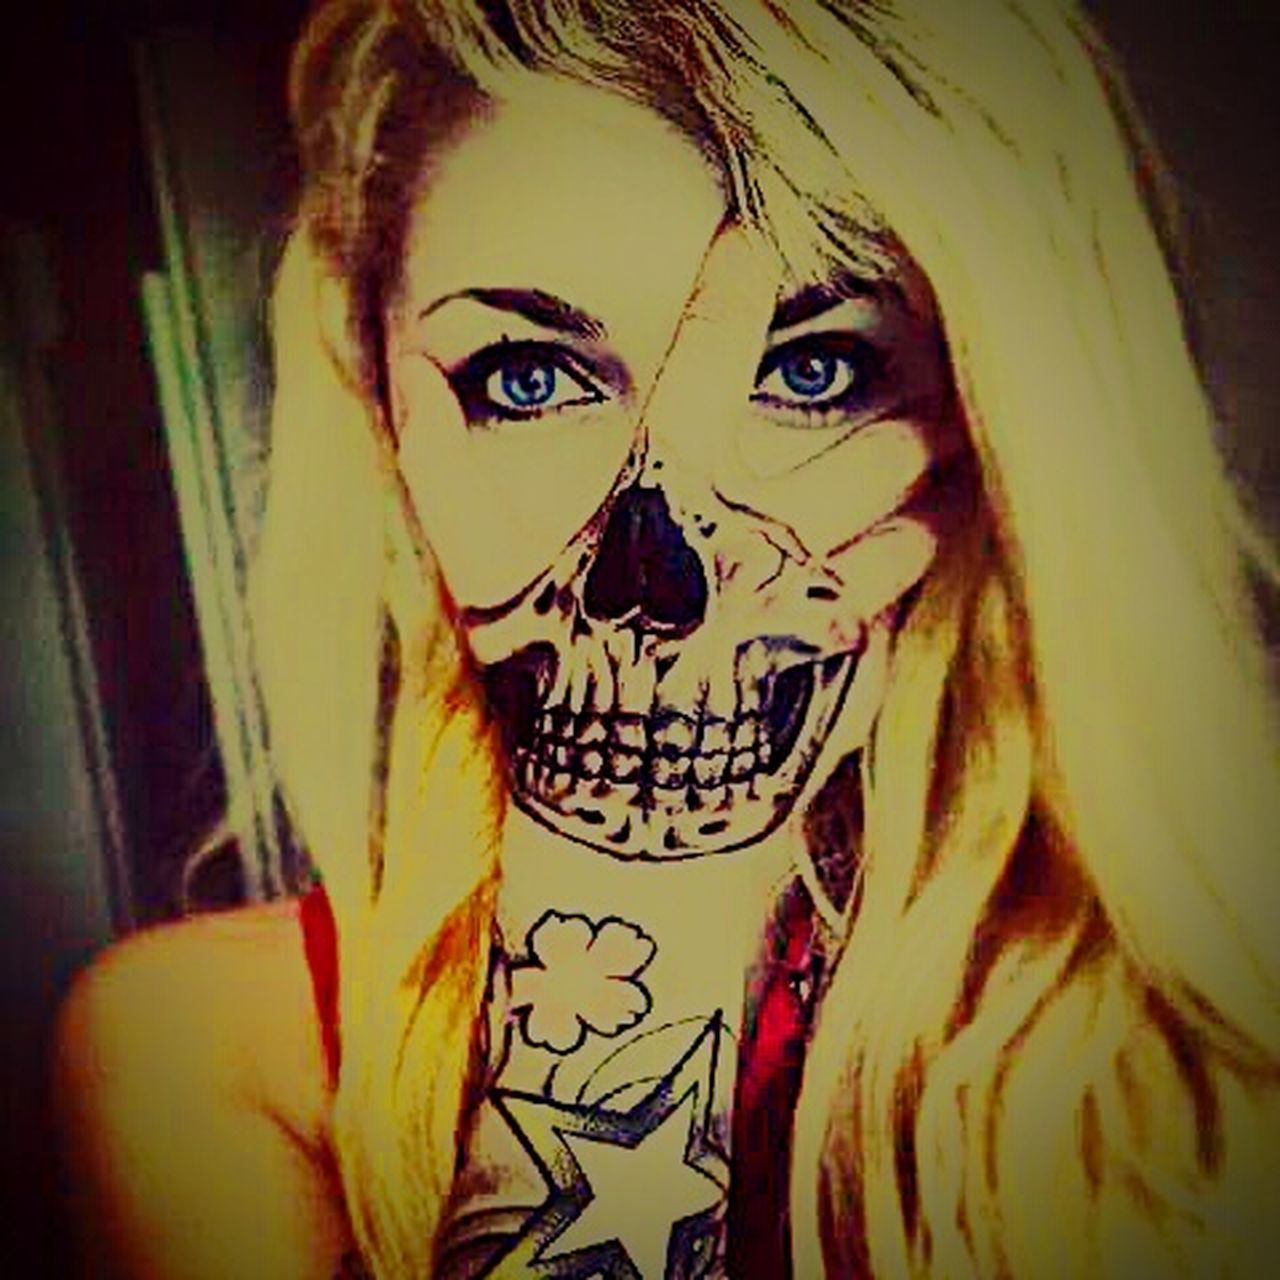 SexyAsFuck Mercurial Tattoo ❤ Art, Drawing, Creativity Unique Beauty Darkness And Light Emo Nightgallery Dark Art Creative Light And Shadow Shadows & Lights Twilight Darkest Hours Grunge Art Blonde ♡ Sweetandsexy Fear Itself Horrorart Horror Portrait Occult Blonde Girl Punkprincess Sexygirl Pretty Girl Swag You Will Be Loved